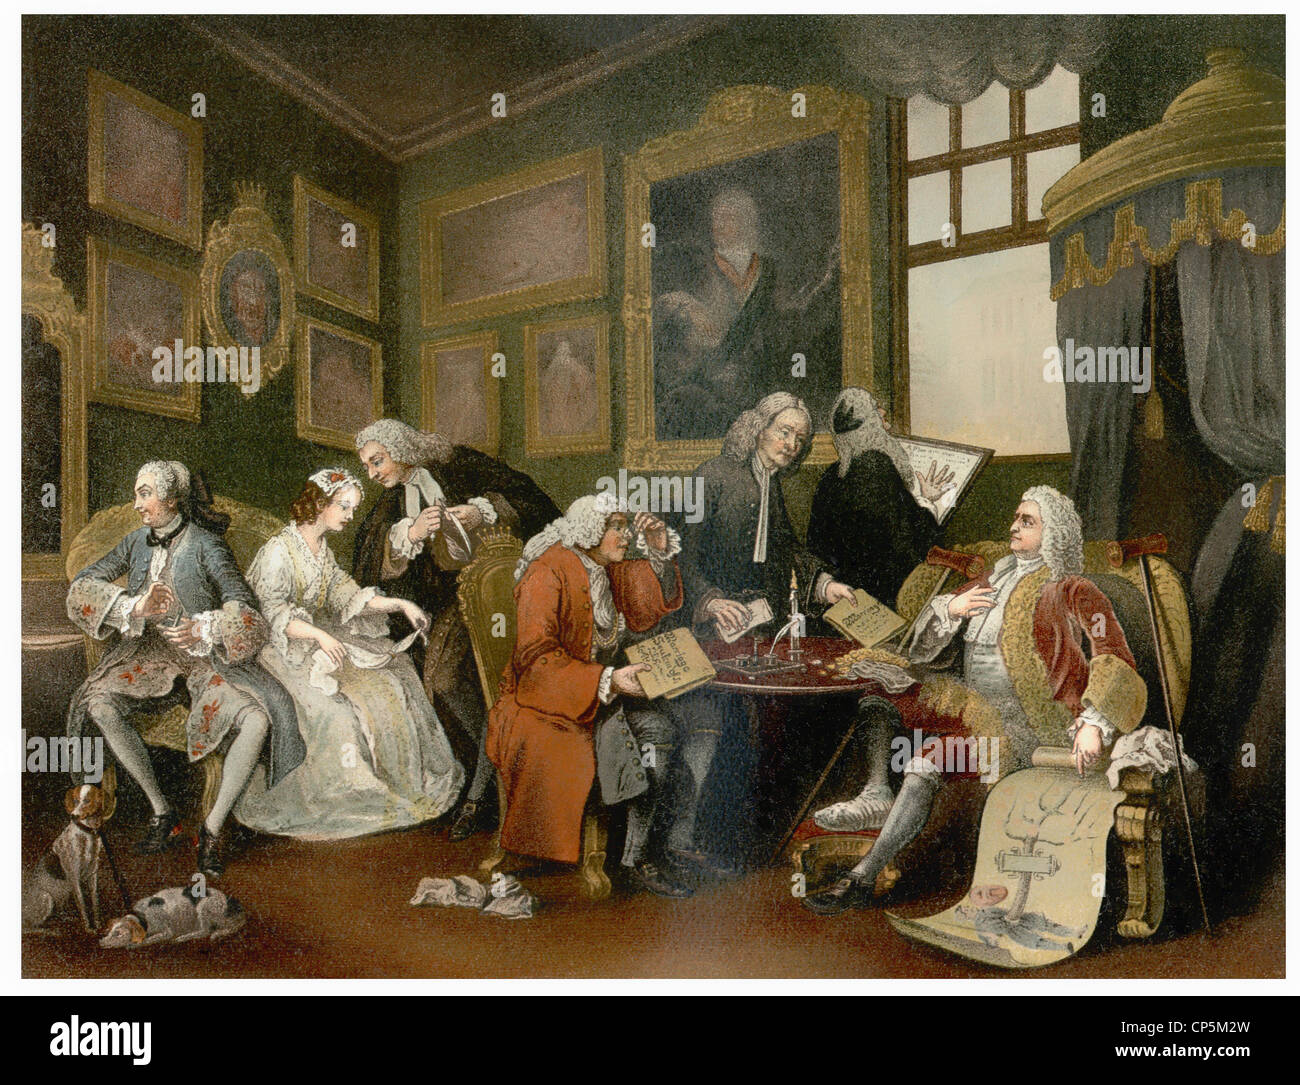 the Marriage Contract, 1743, by William Hogarth, 1697 - 1764, a socially critical English painter and printmaker Stock Photo